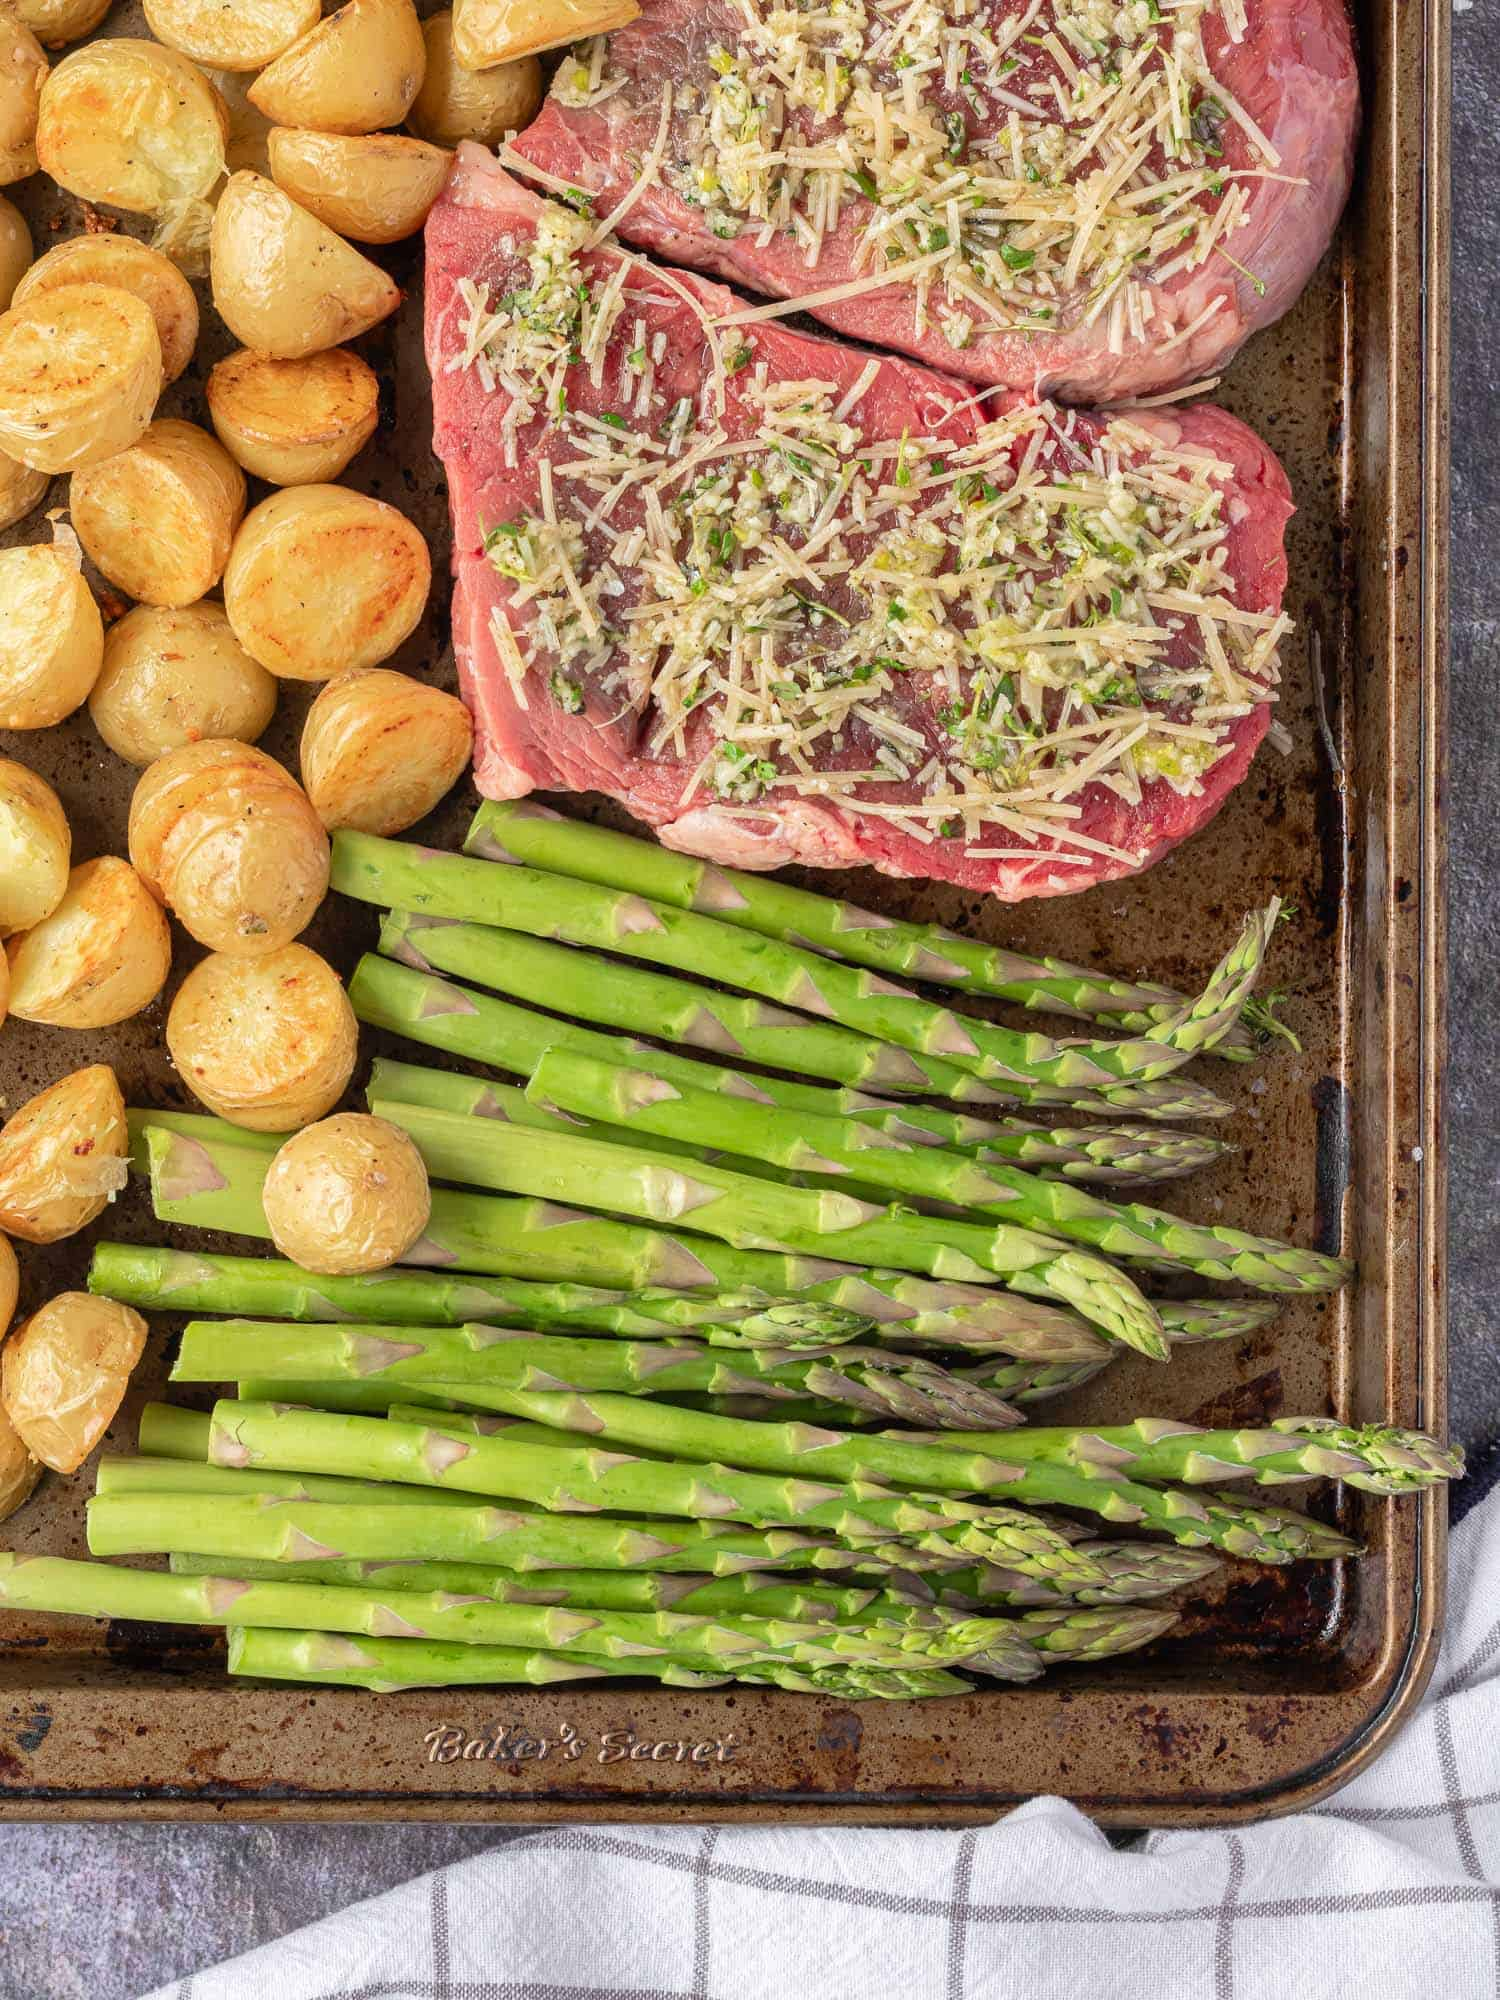 Uncooked steak and vegetables on a sheet pan.